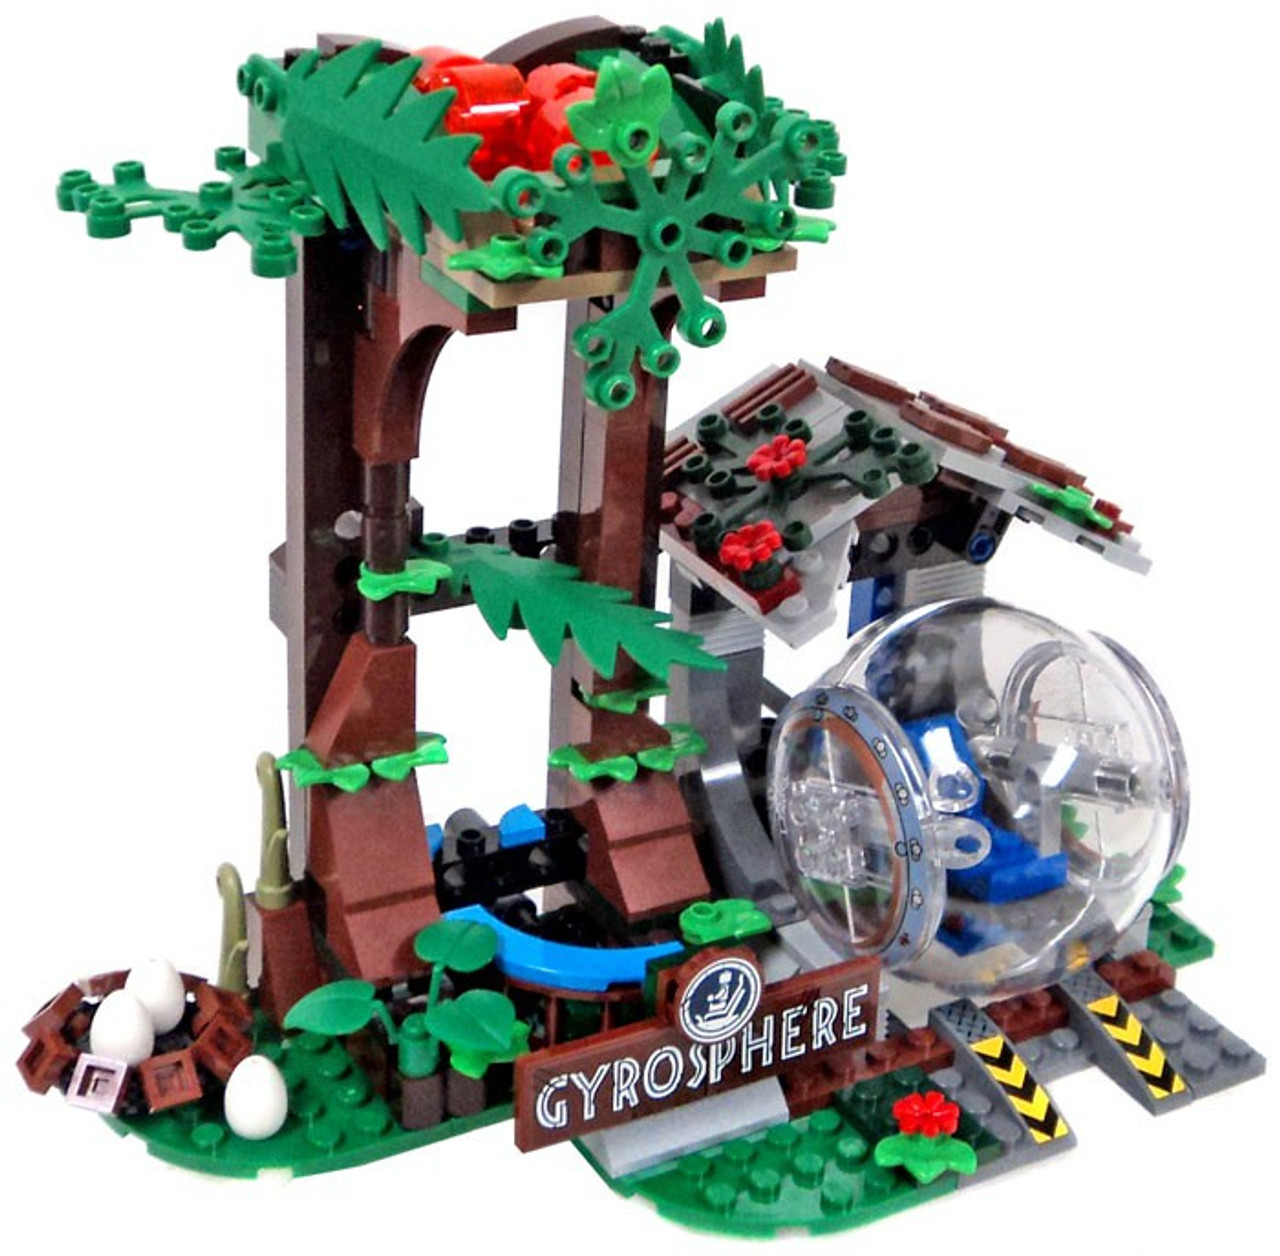 Lego Unveils The Complete Jurassic World Fallen Kingdom: LEGO Jurassic World Fallen Kingdom Overgrown Gyrosphere